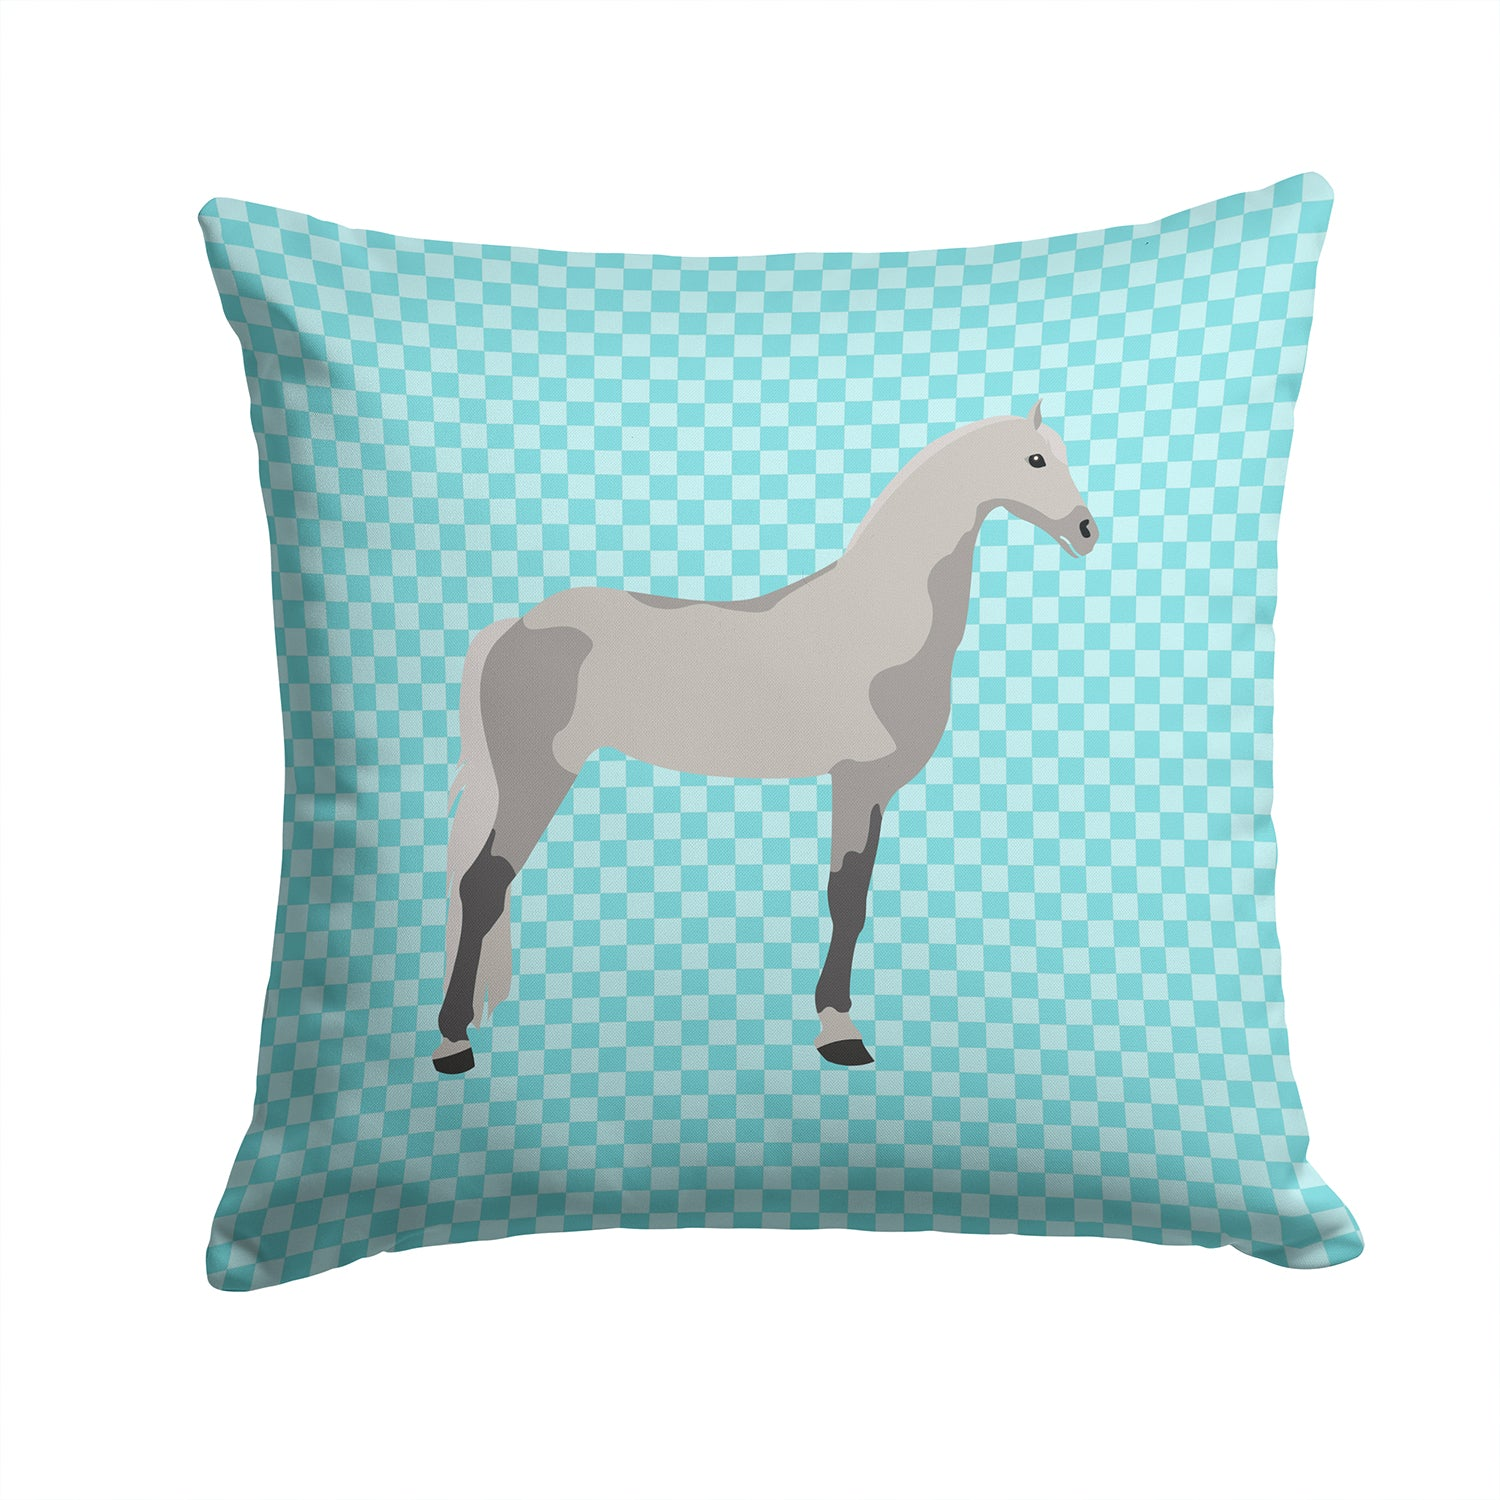 Orlov Trotter Horse Blue Check Fabric Decorative Pillow BB8082PW1414 by Caroline's Treasures